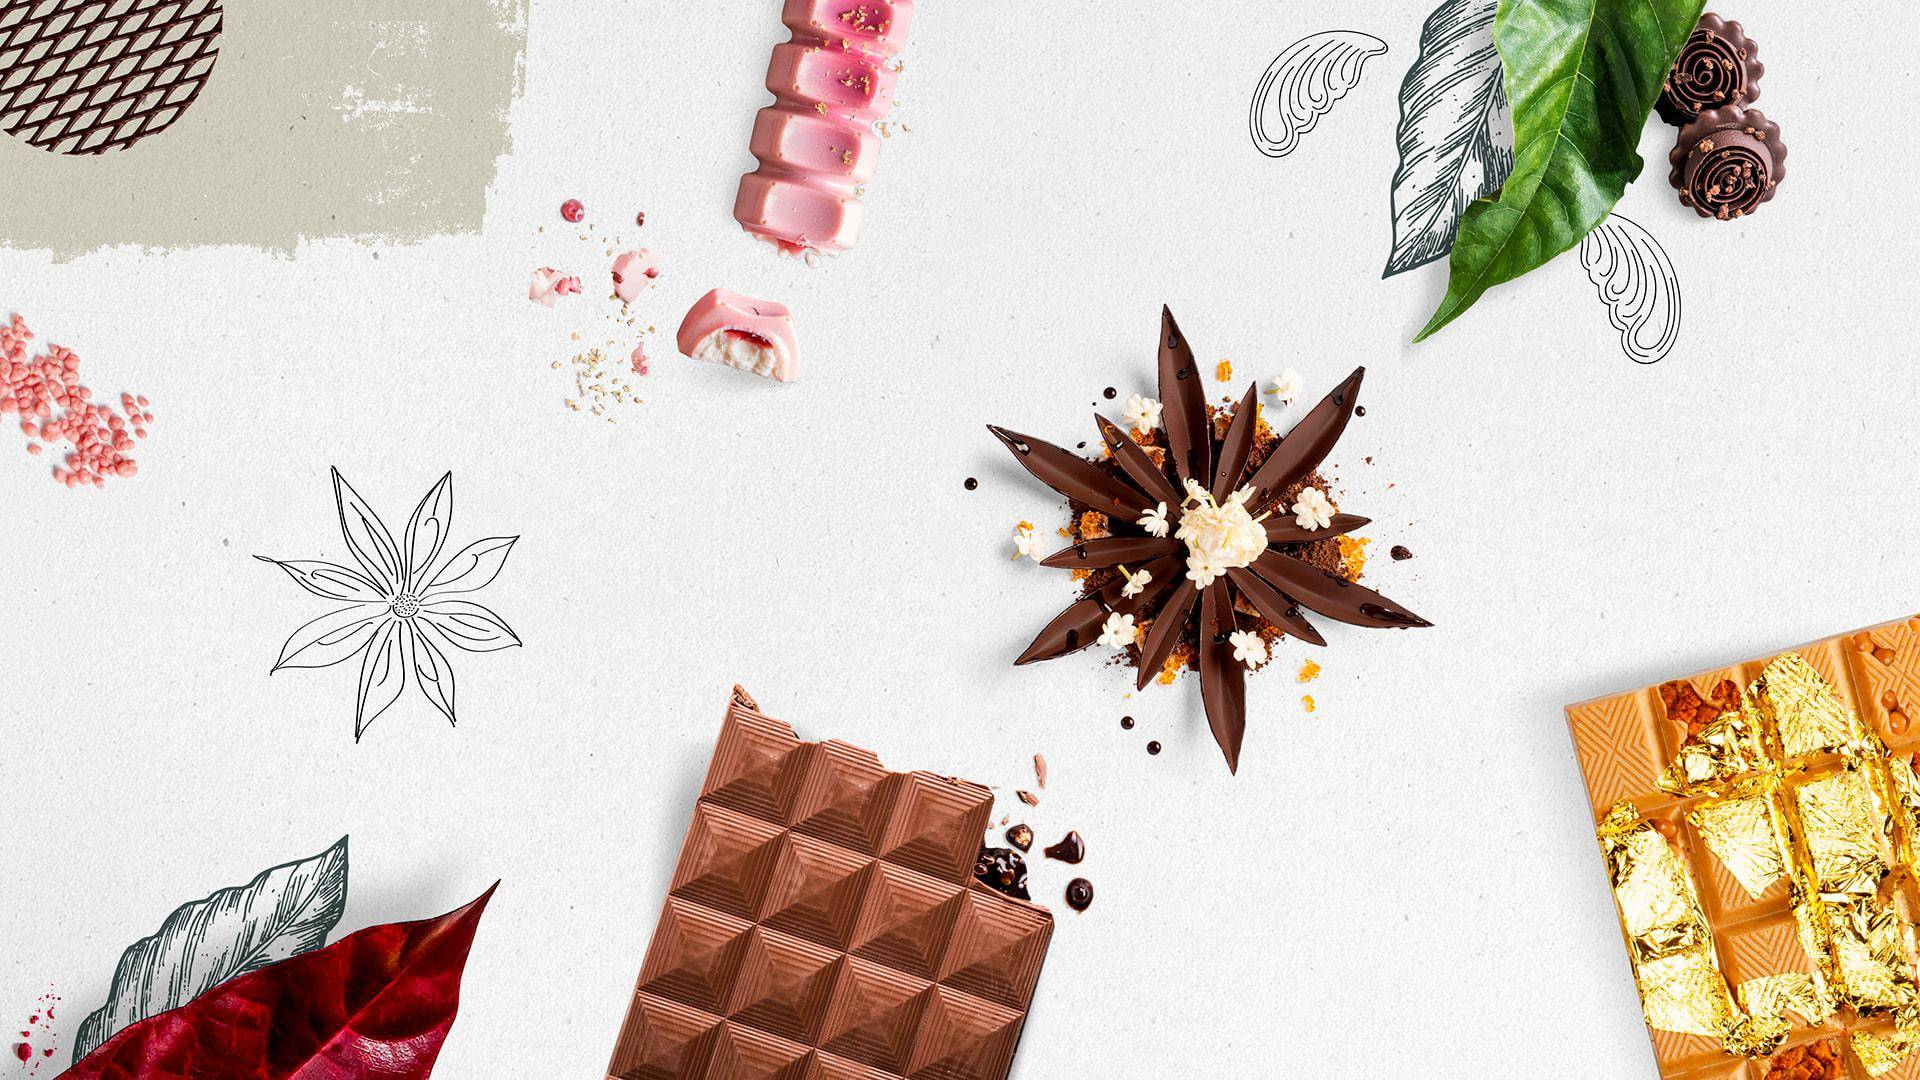 Full-Year Results Barry Callebaut